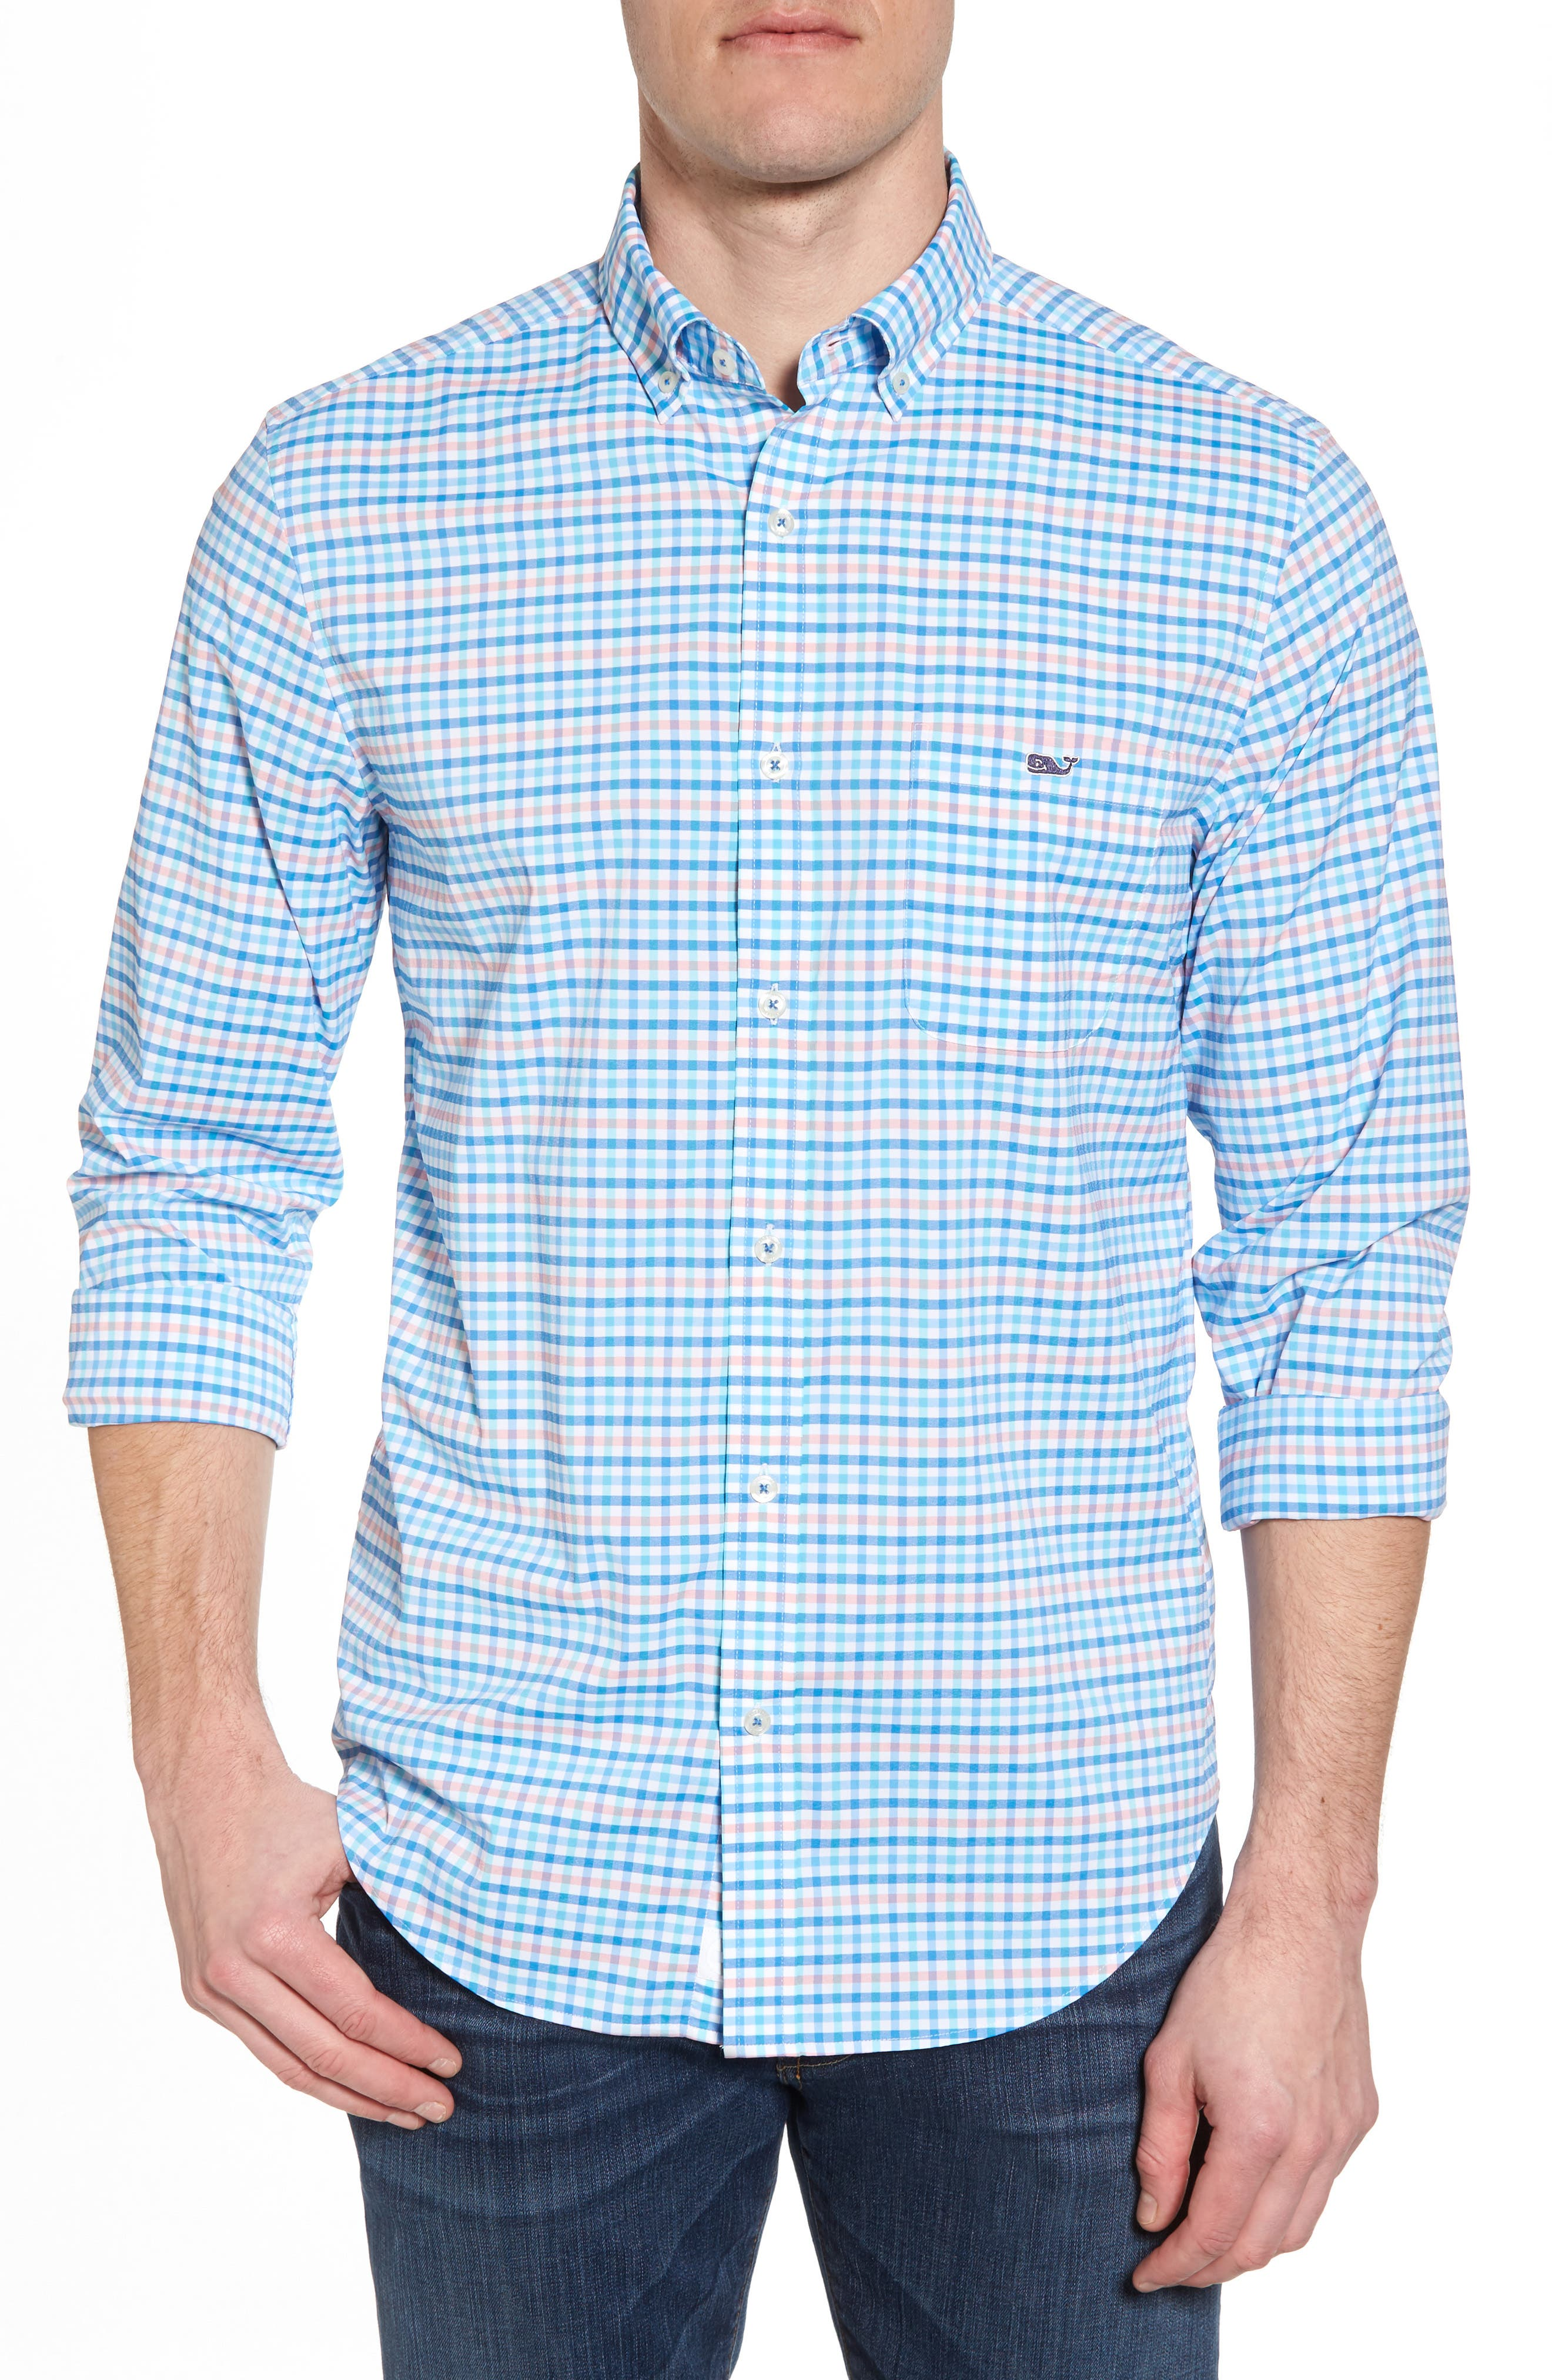 Coco Bay Classic Fit Check Performance Sport Shirt,                         Main,                         color, Ocean Breeze